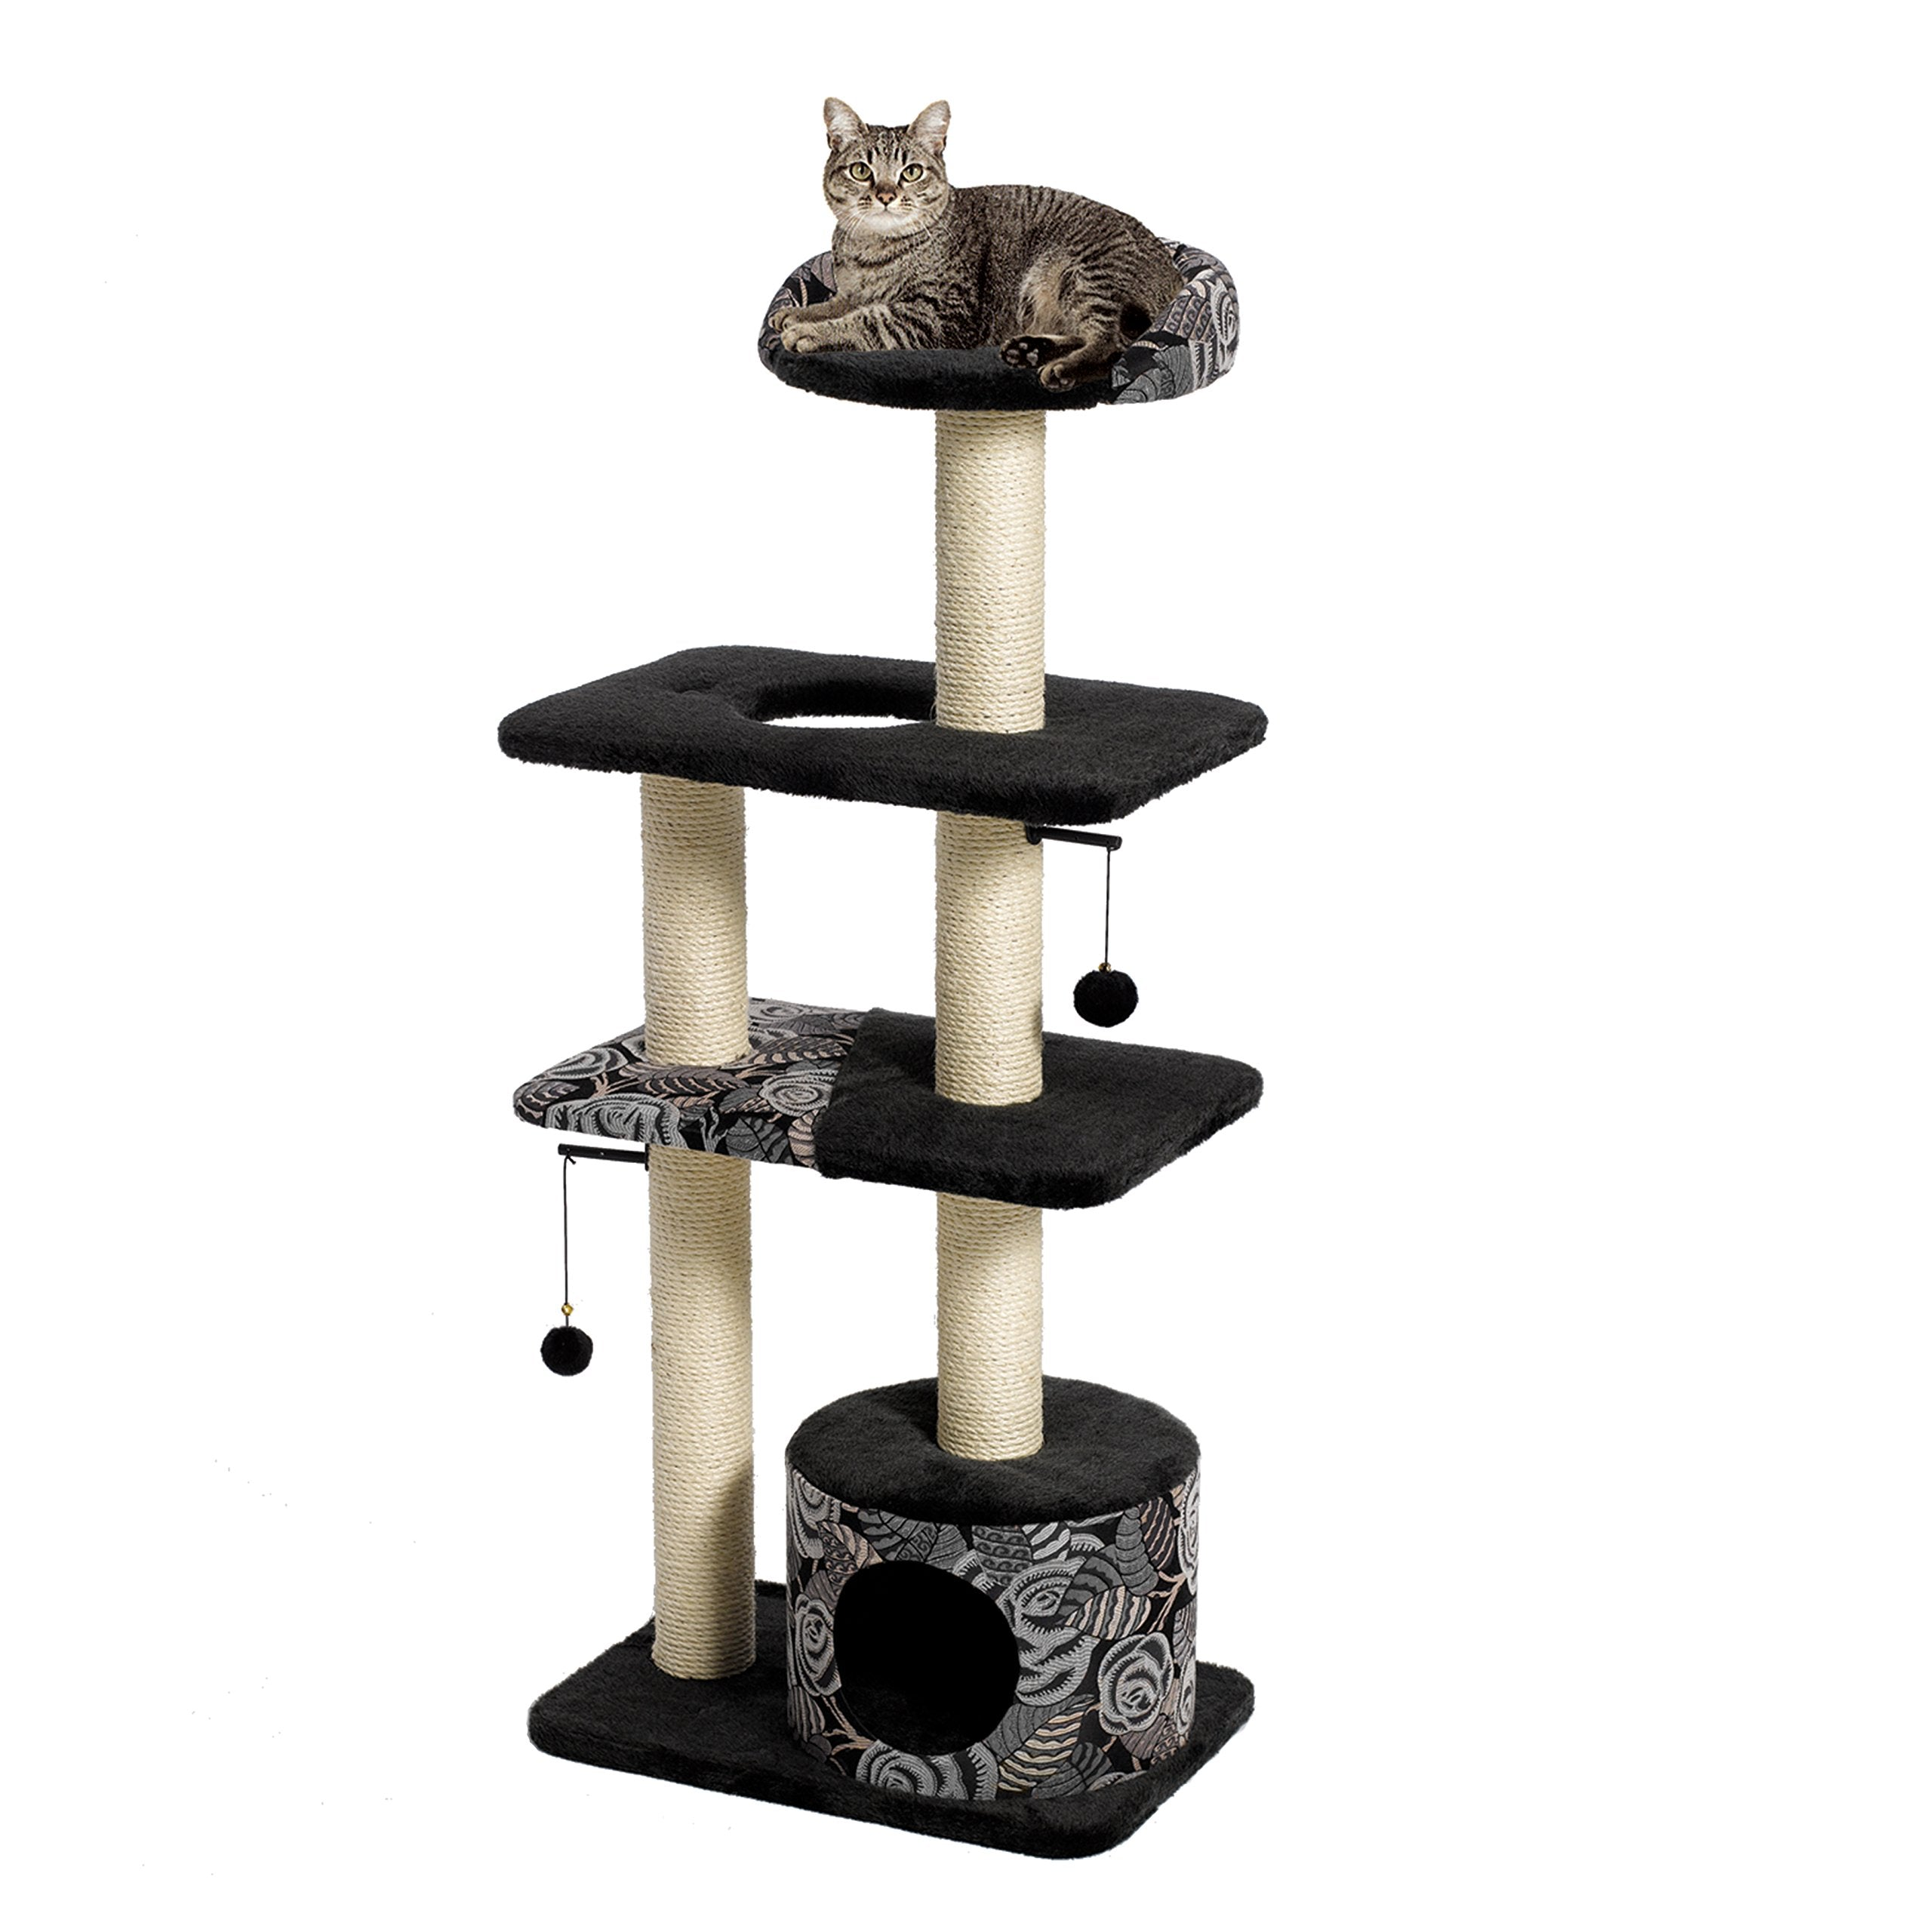 Feline Tower Cat tree Furniture Scratching Post